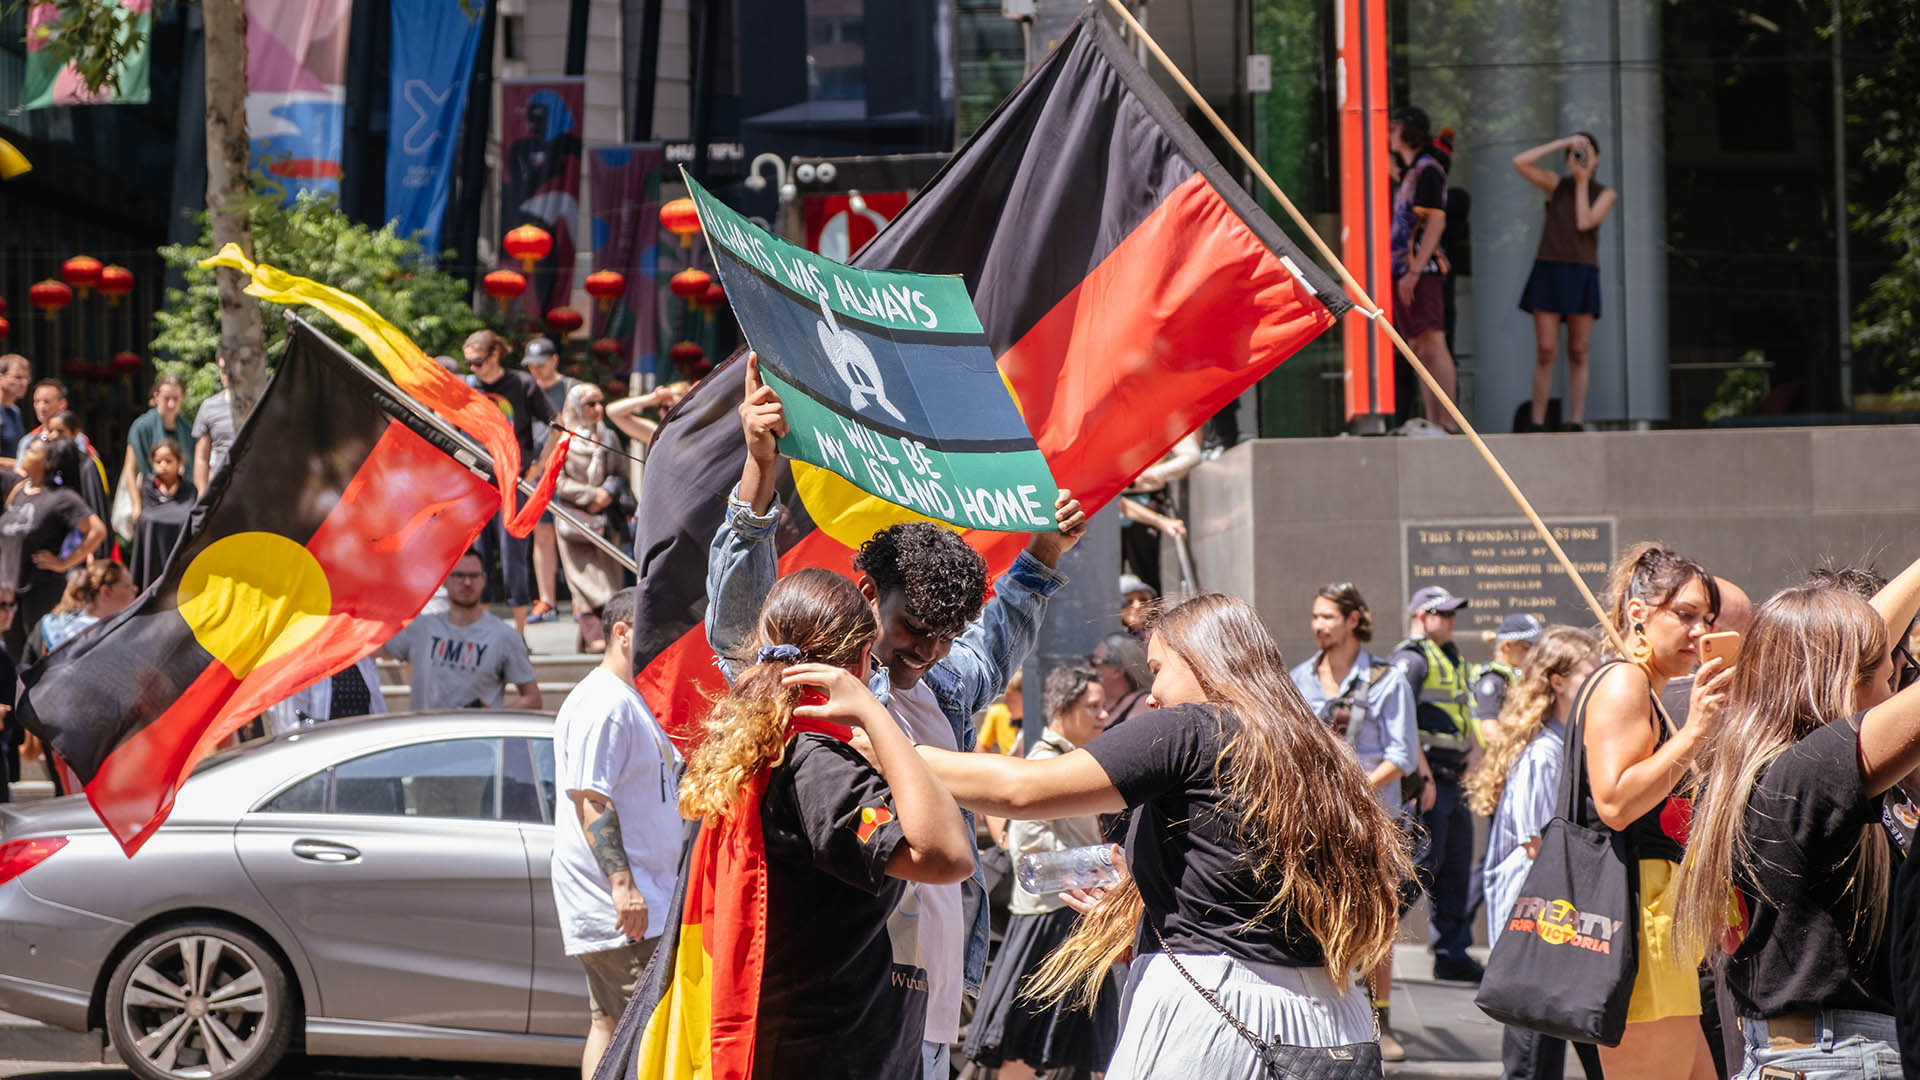 Marchers and young Indigenous people at the Invasion Day rally in Melbourne Australia waving Aboriginal and Torres Strait Islander flags